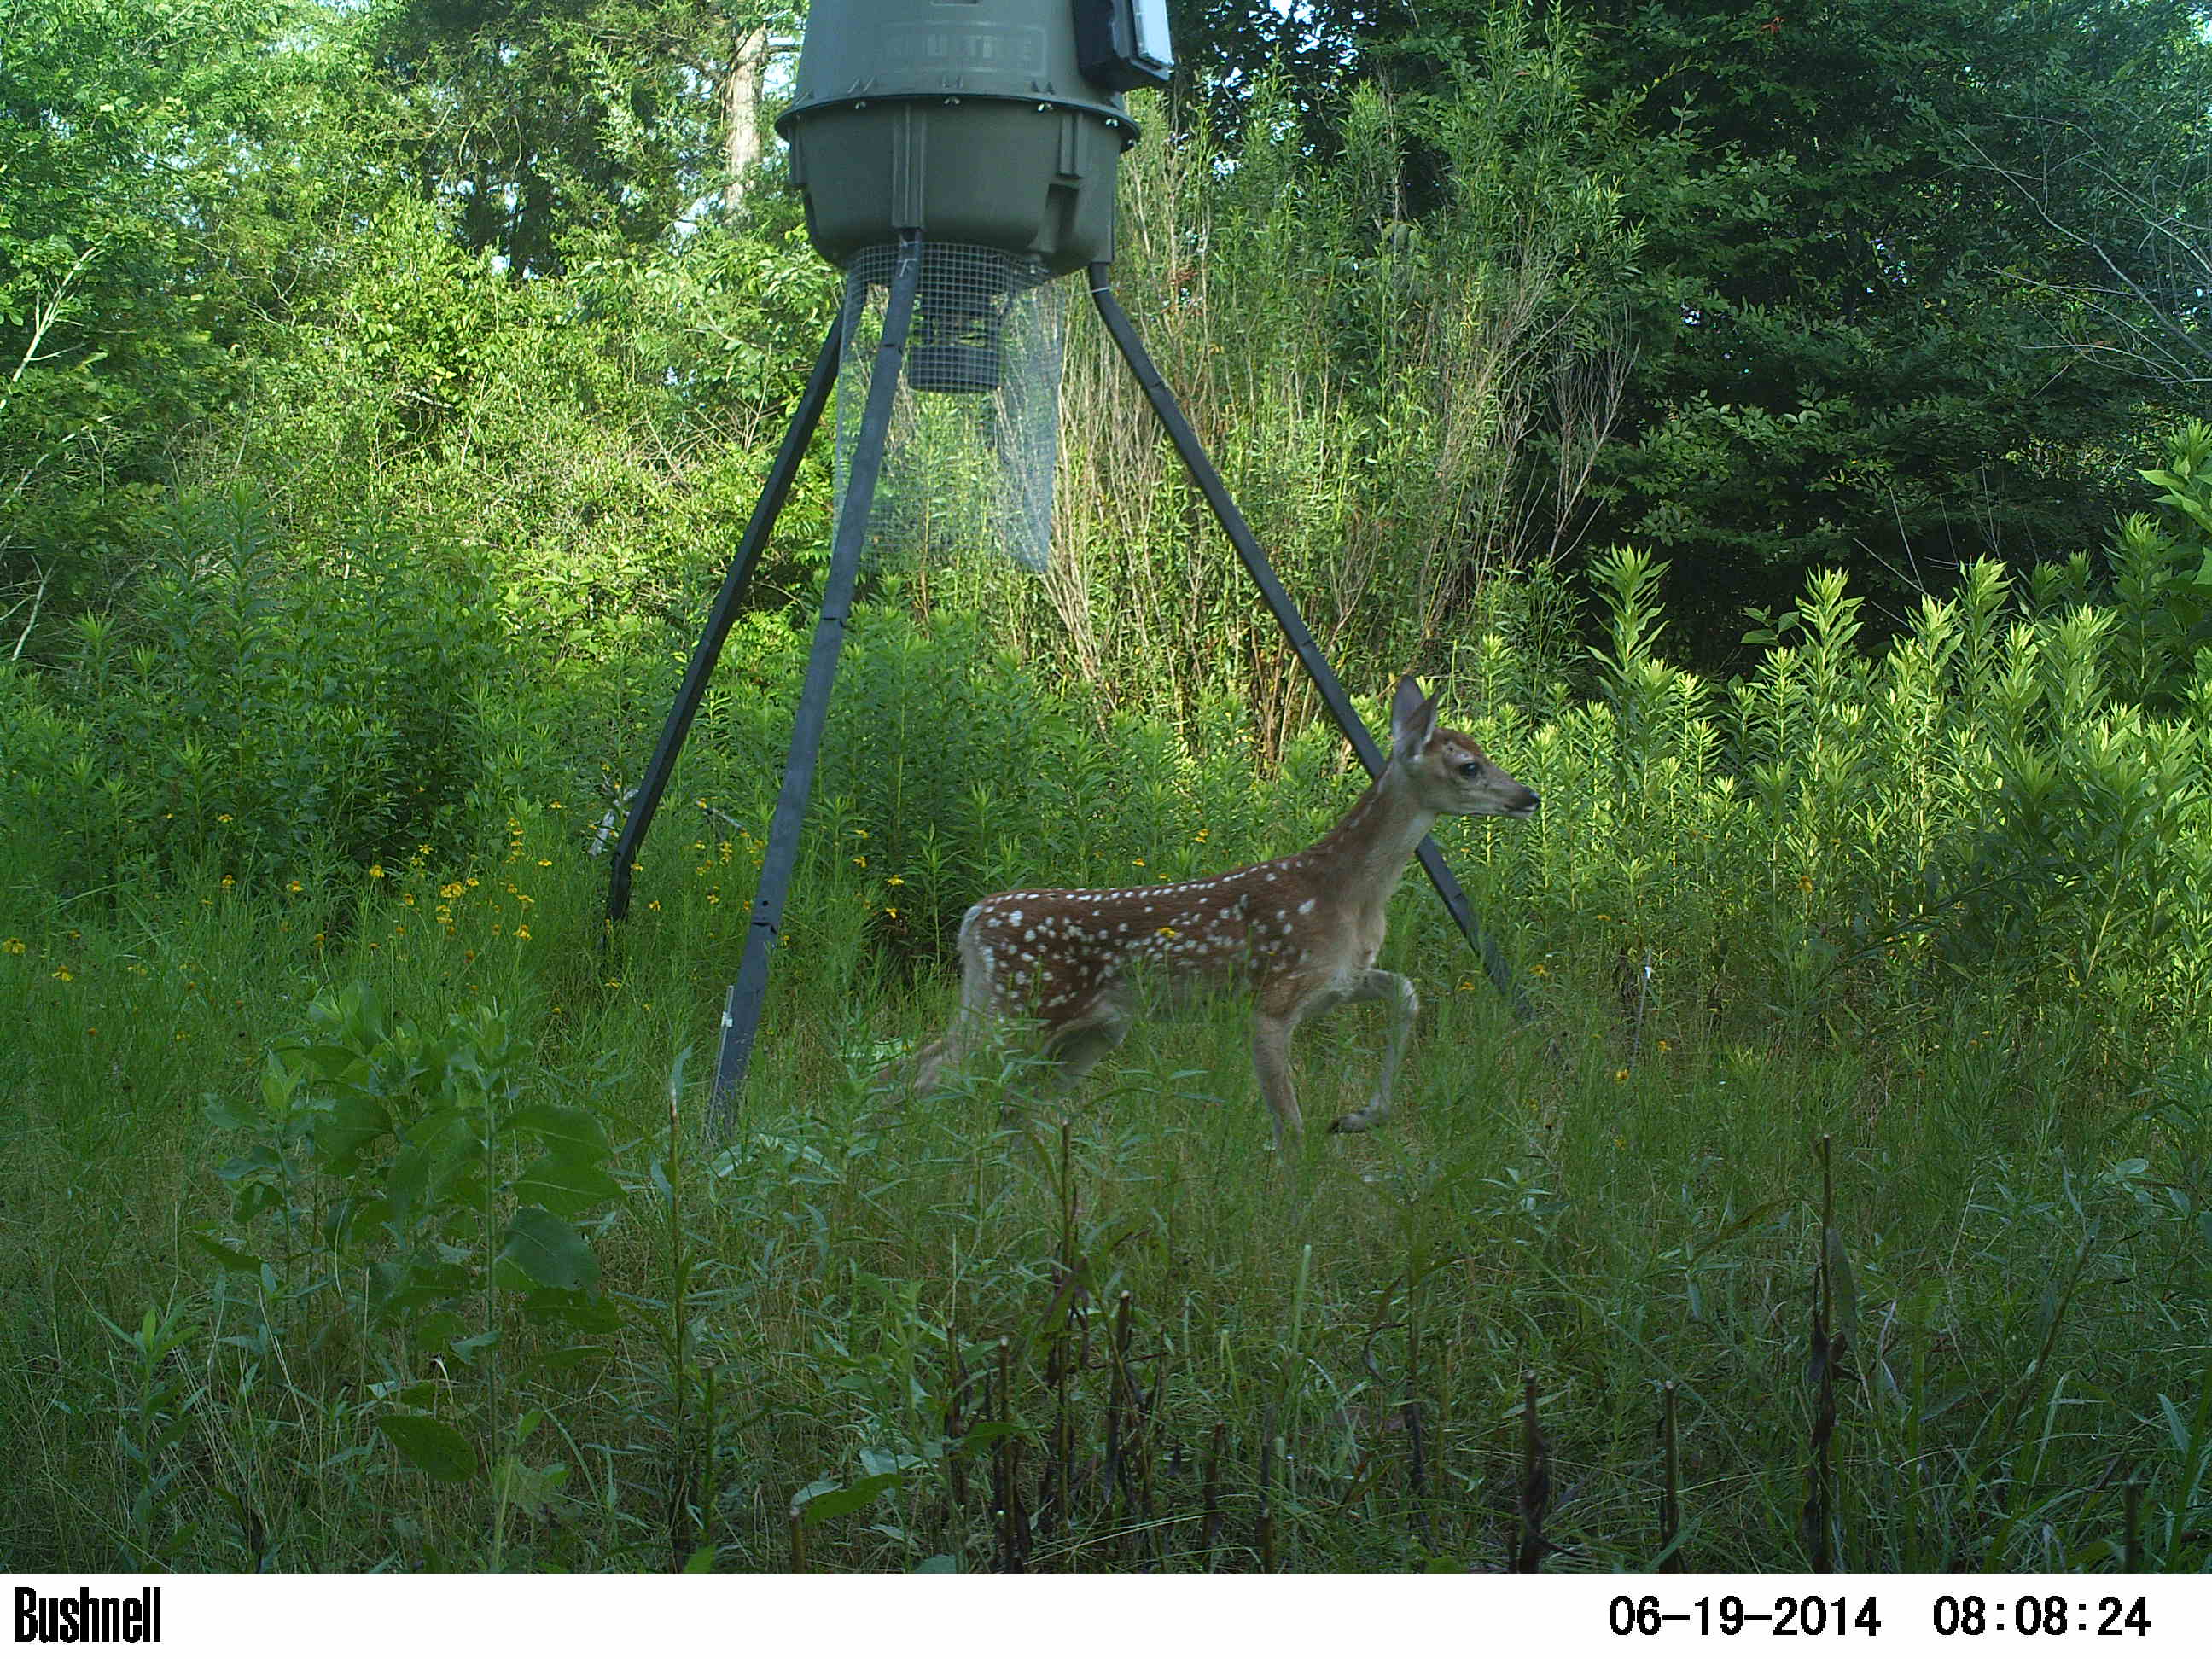 feeder rush buck arms deer hunts filming for boss sep feeders camera photo tag hunting pm